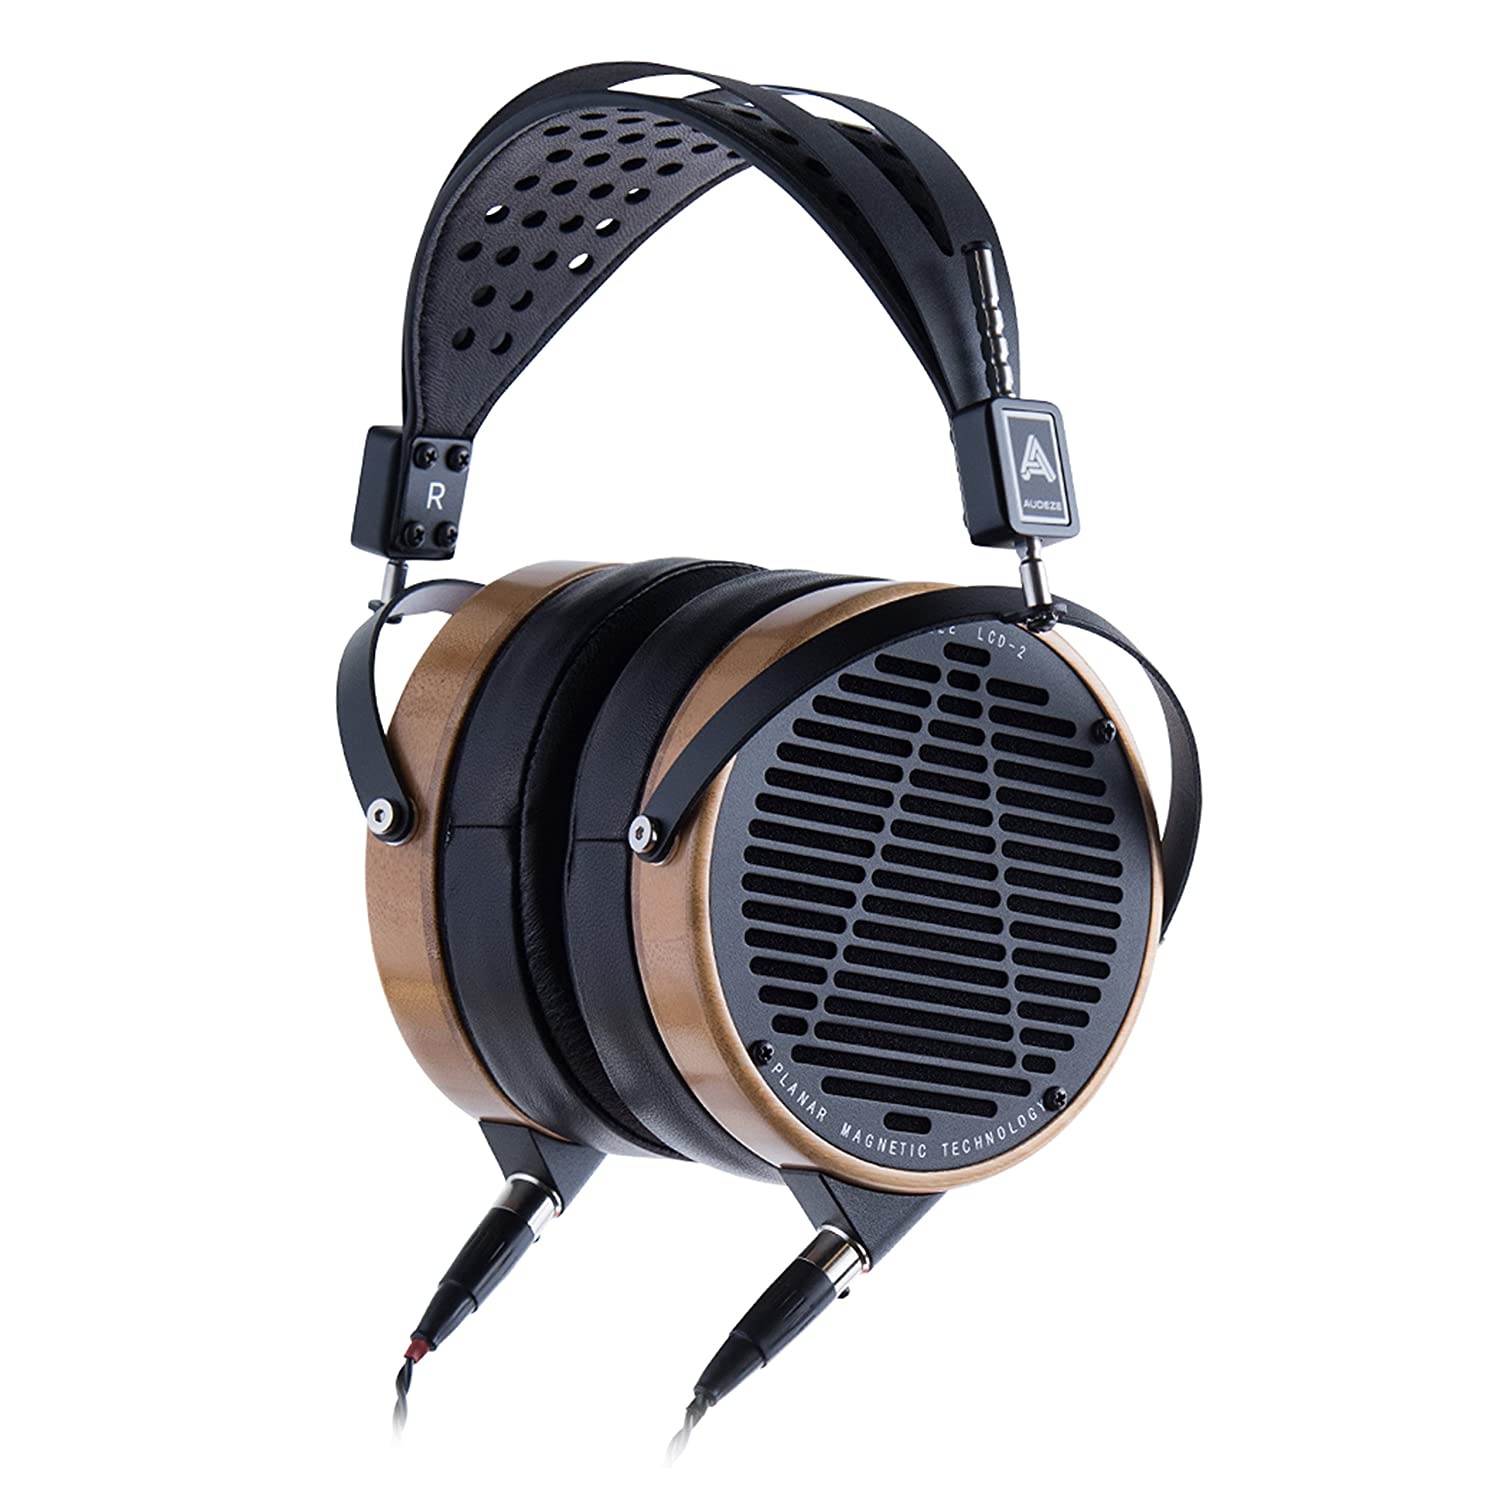 Audeze Lcd 2 Over Ear Open Back Headphone Bamboo Mobius Wiring Diagram Wood Rings Leather Electronics